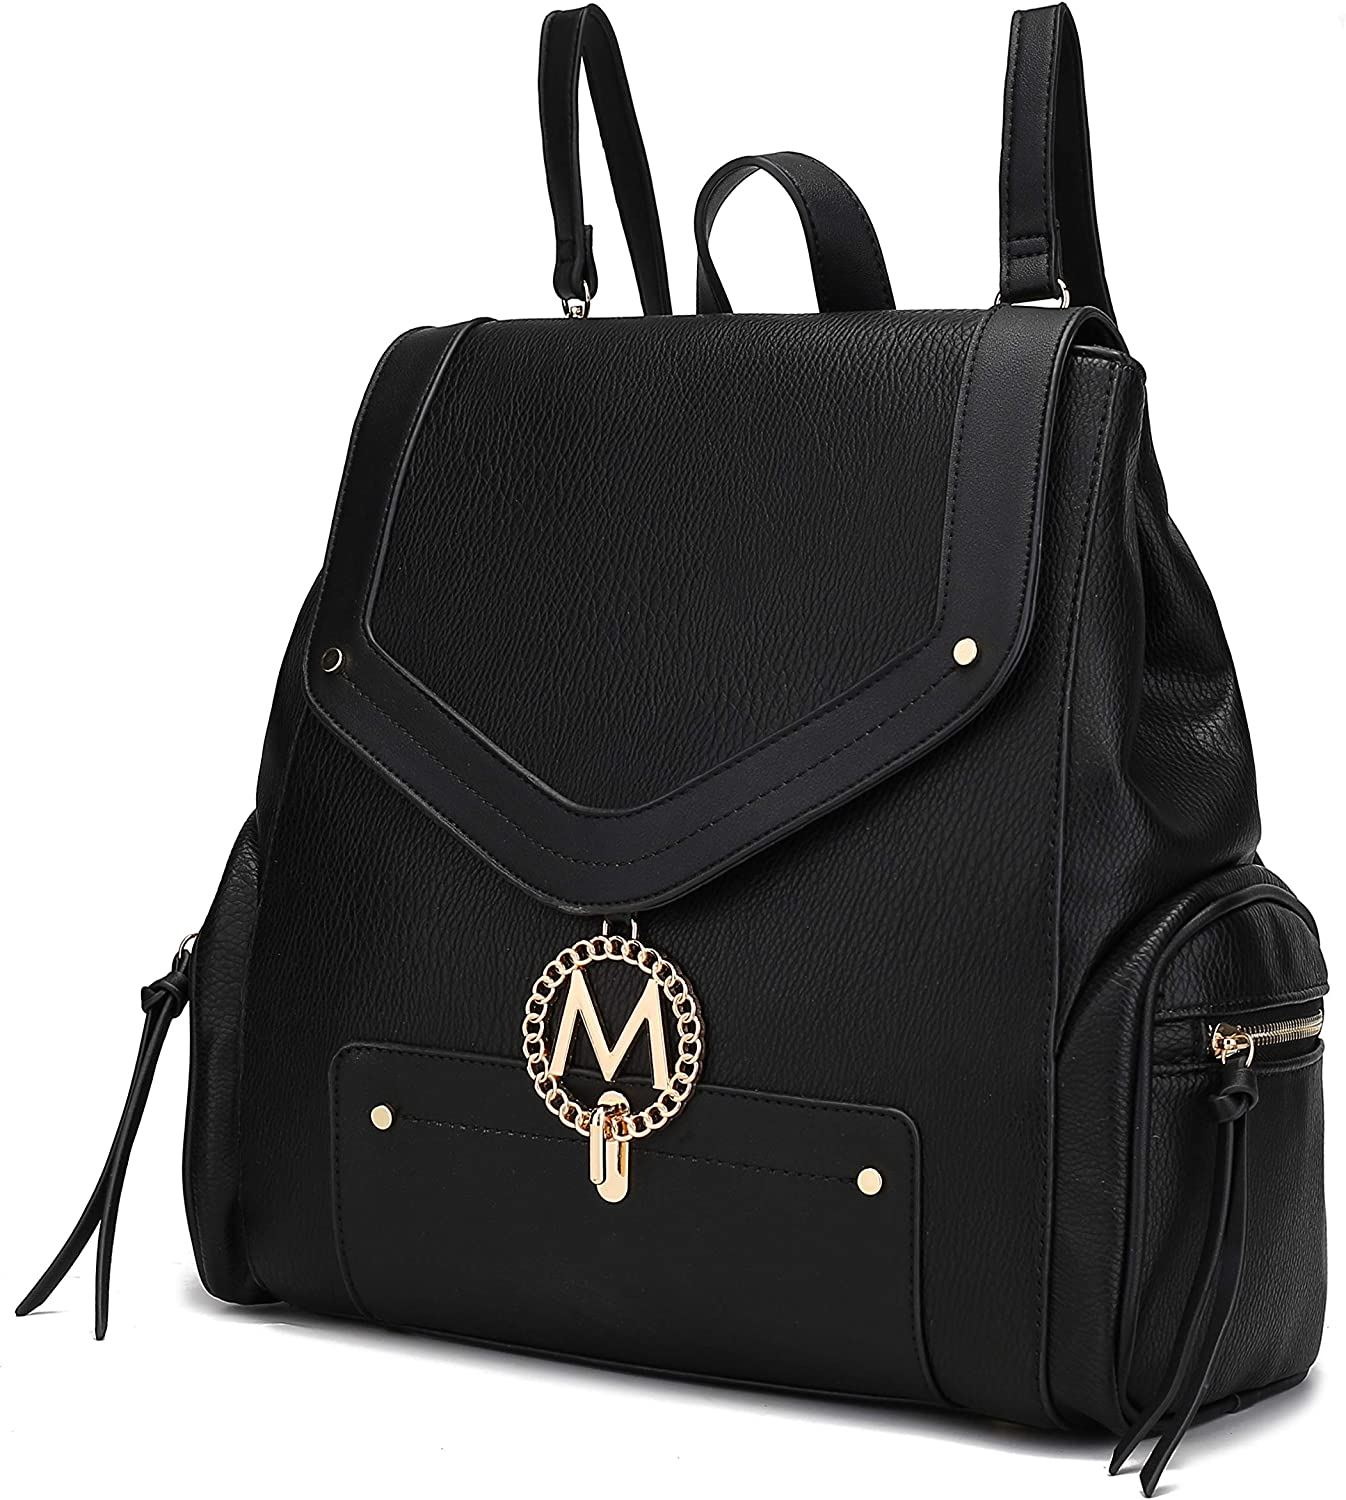 safety MKF Backpack Purse for Women Girls PU Leather Bag Top Handle – Quantity limited